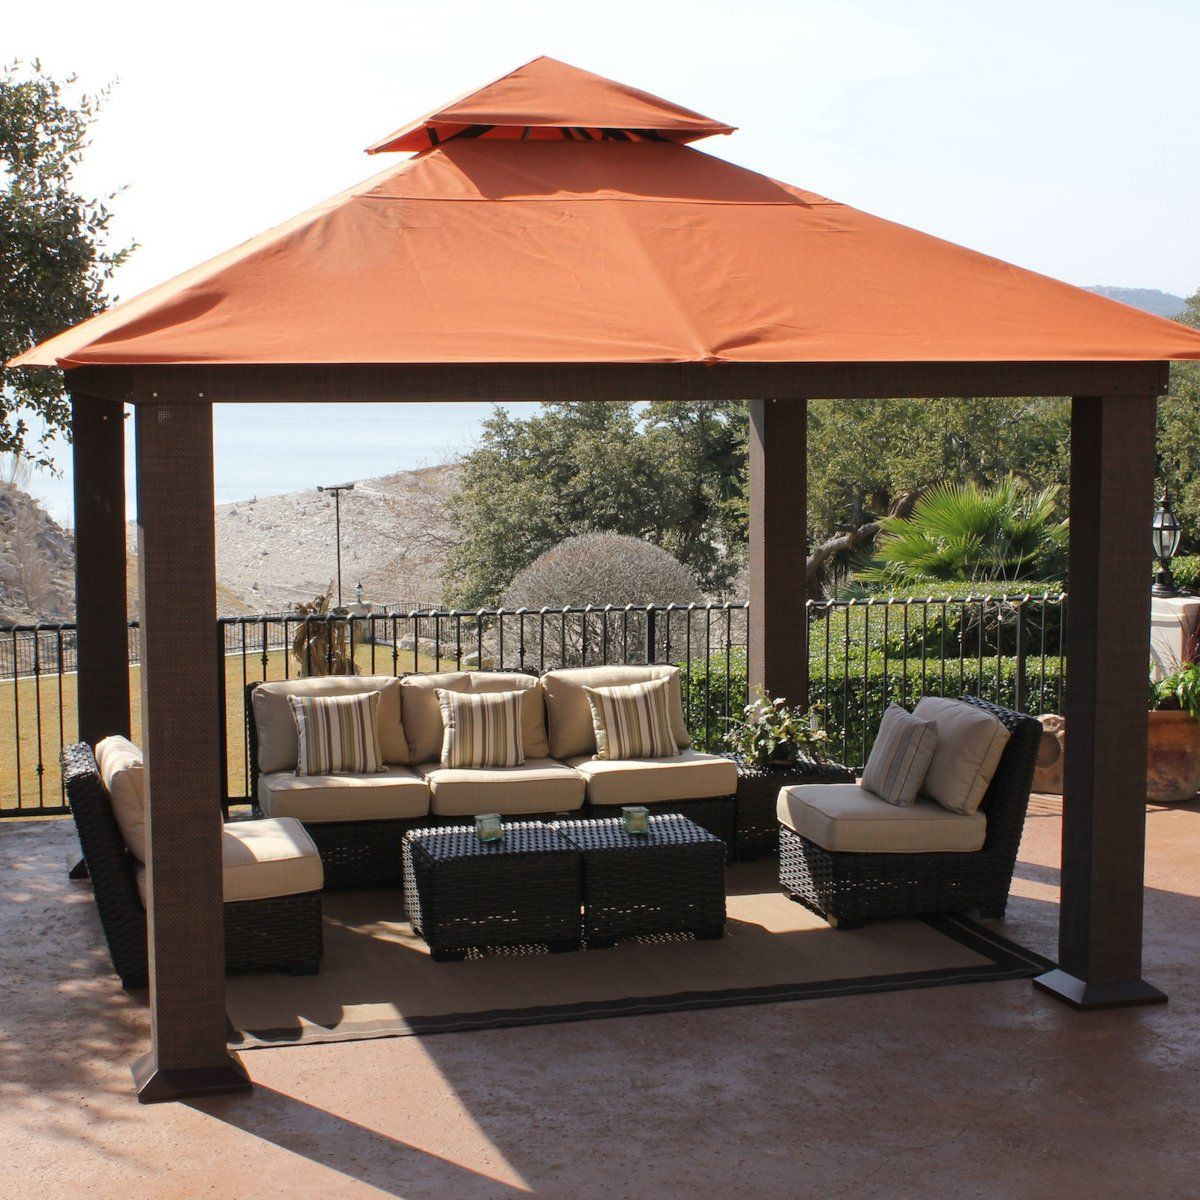 Charming STC 12 X 12 Ft. Seville Gazebo